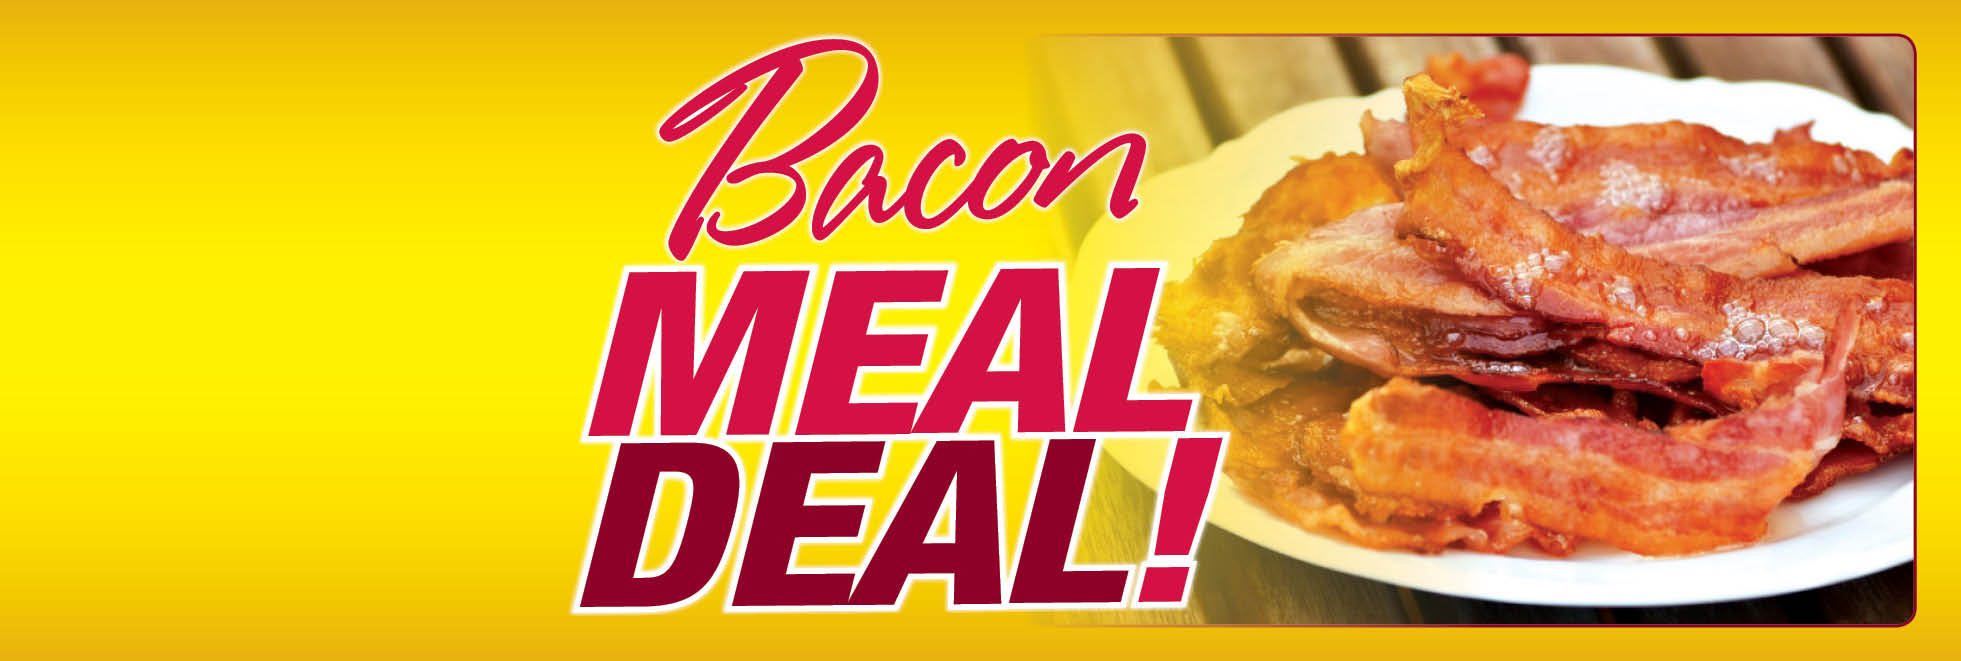 Bacon Meal Deal